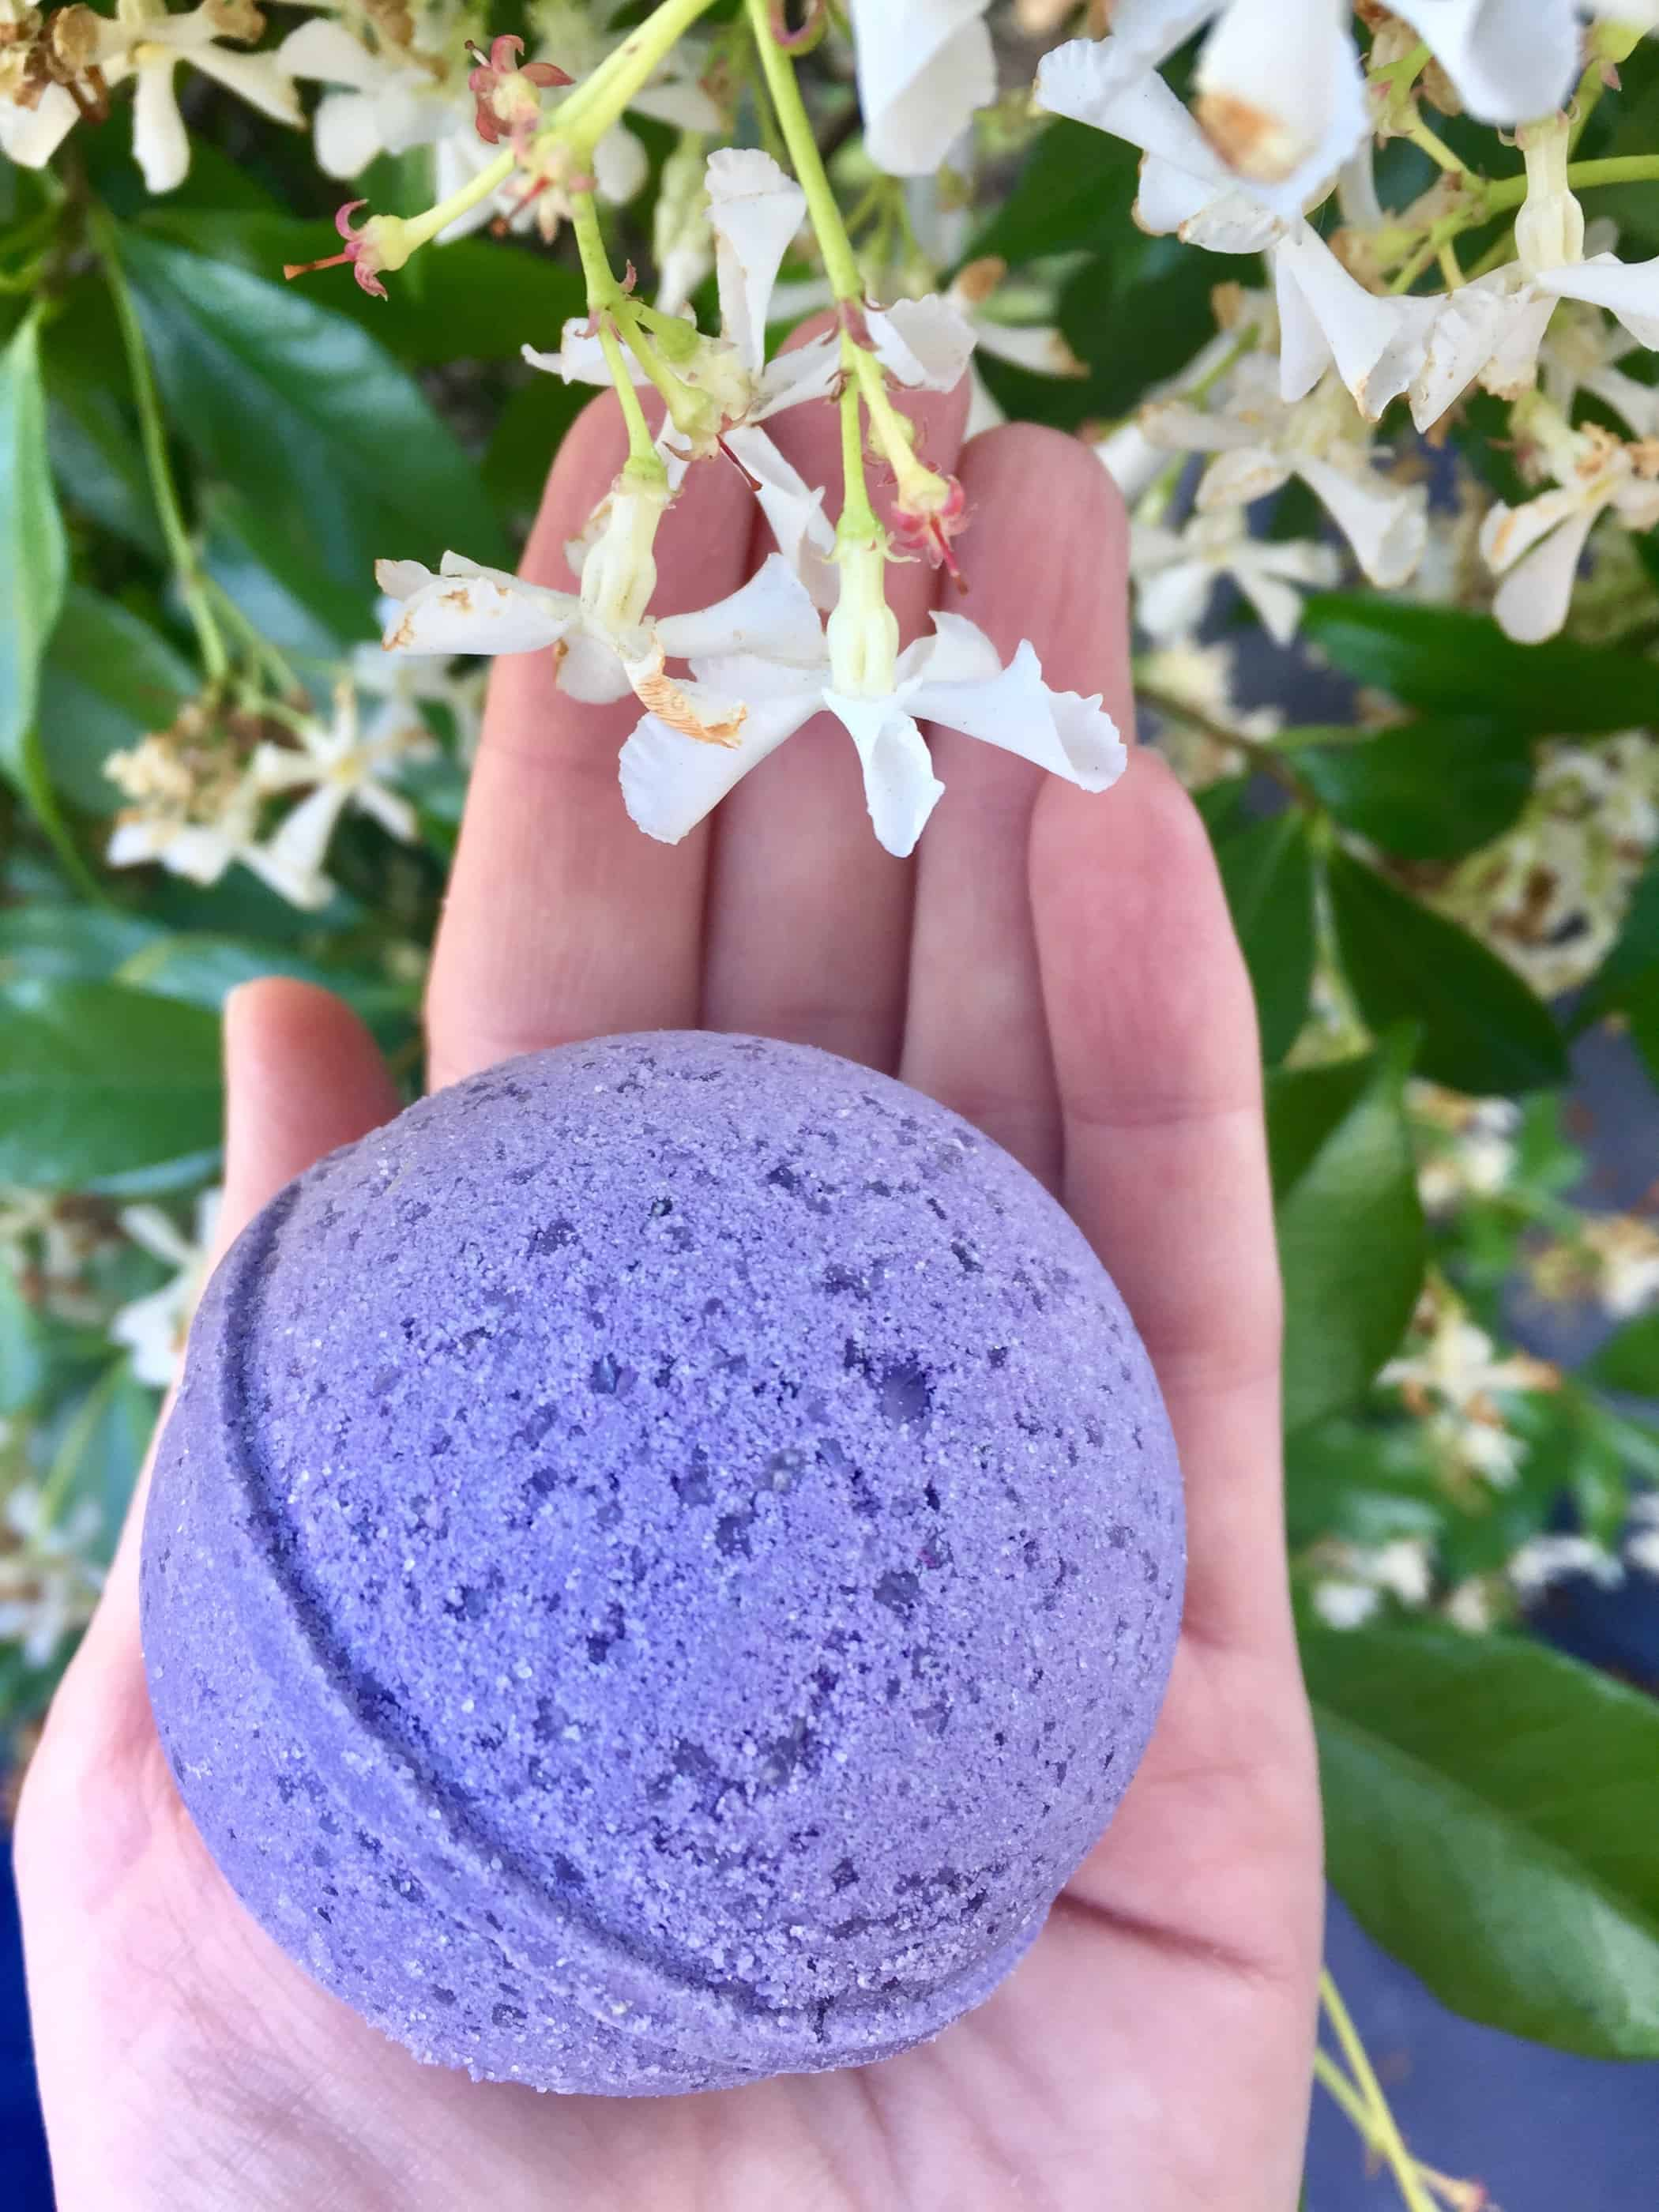 enflower cbd bath bomb utopia lavender save on cannabis beauty shot